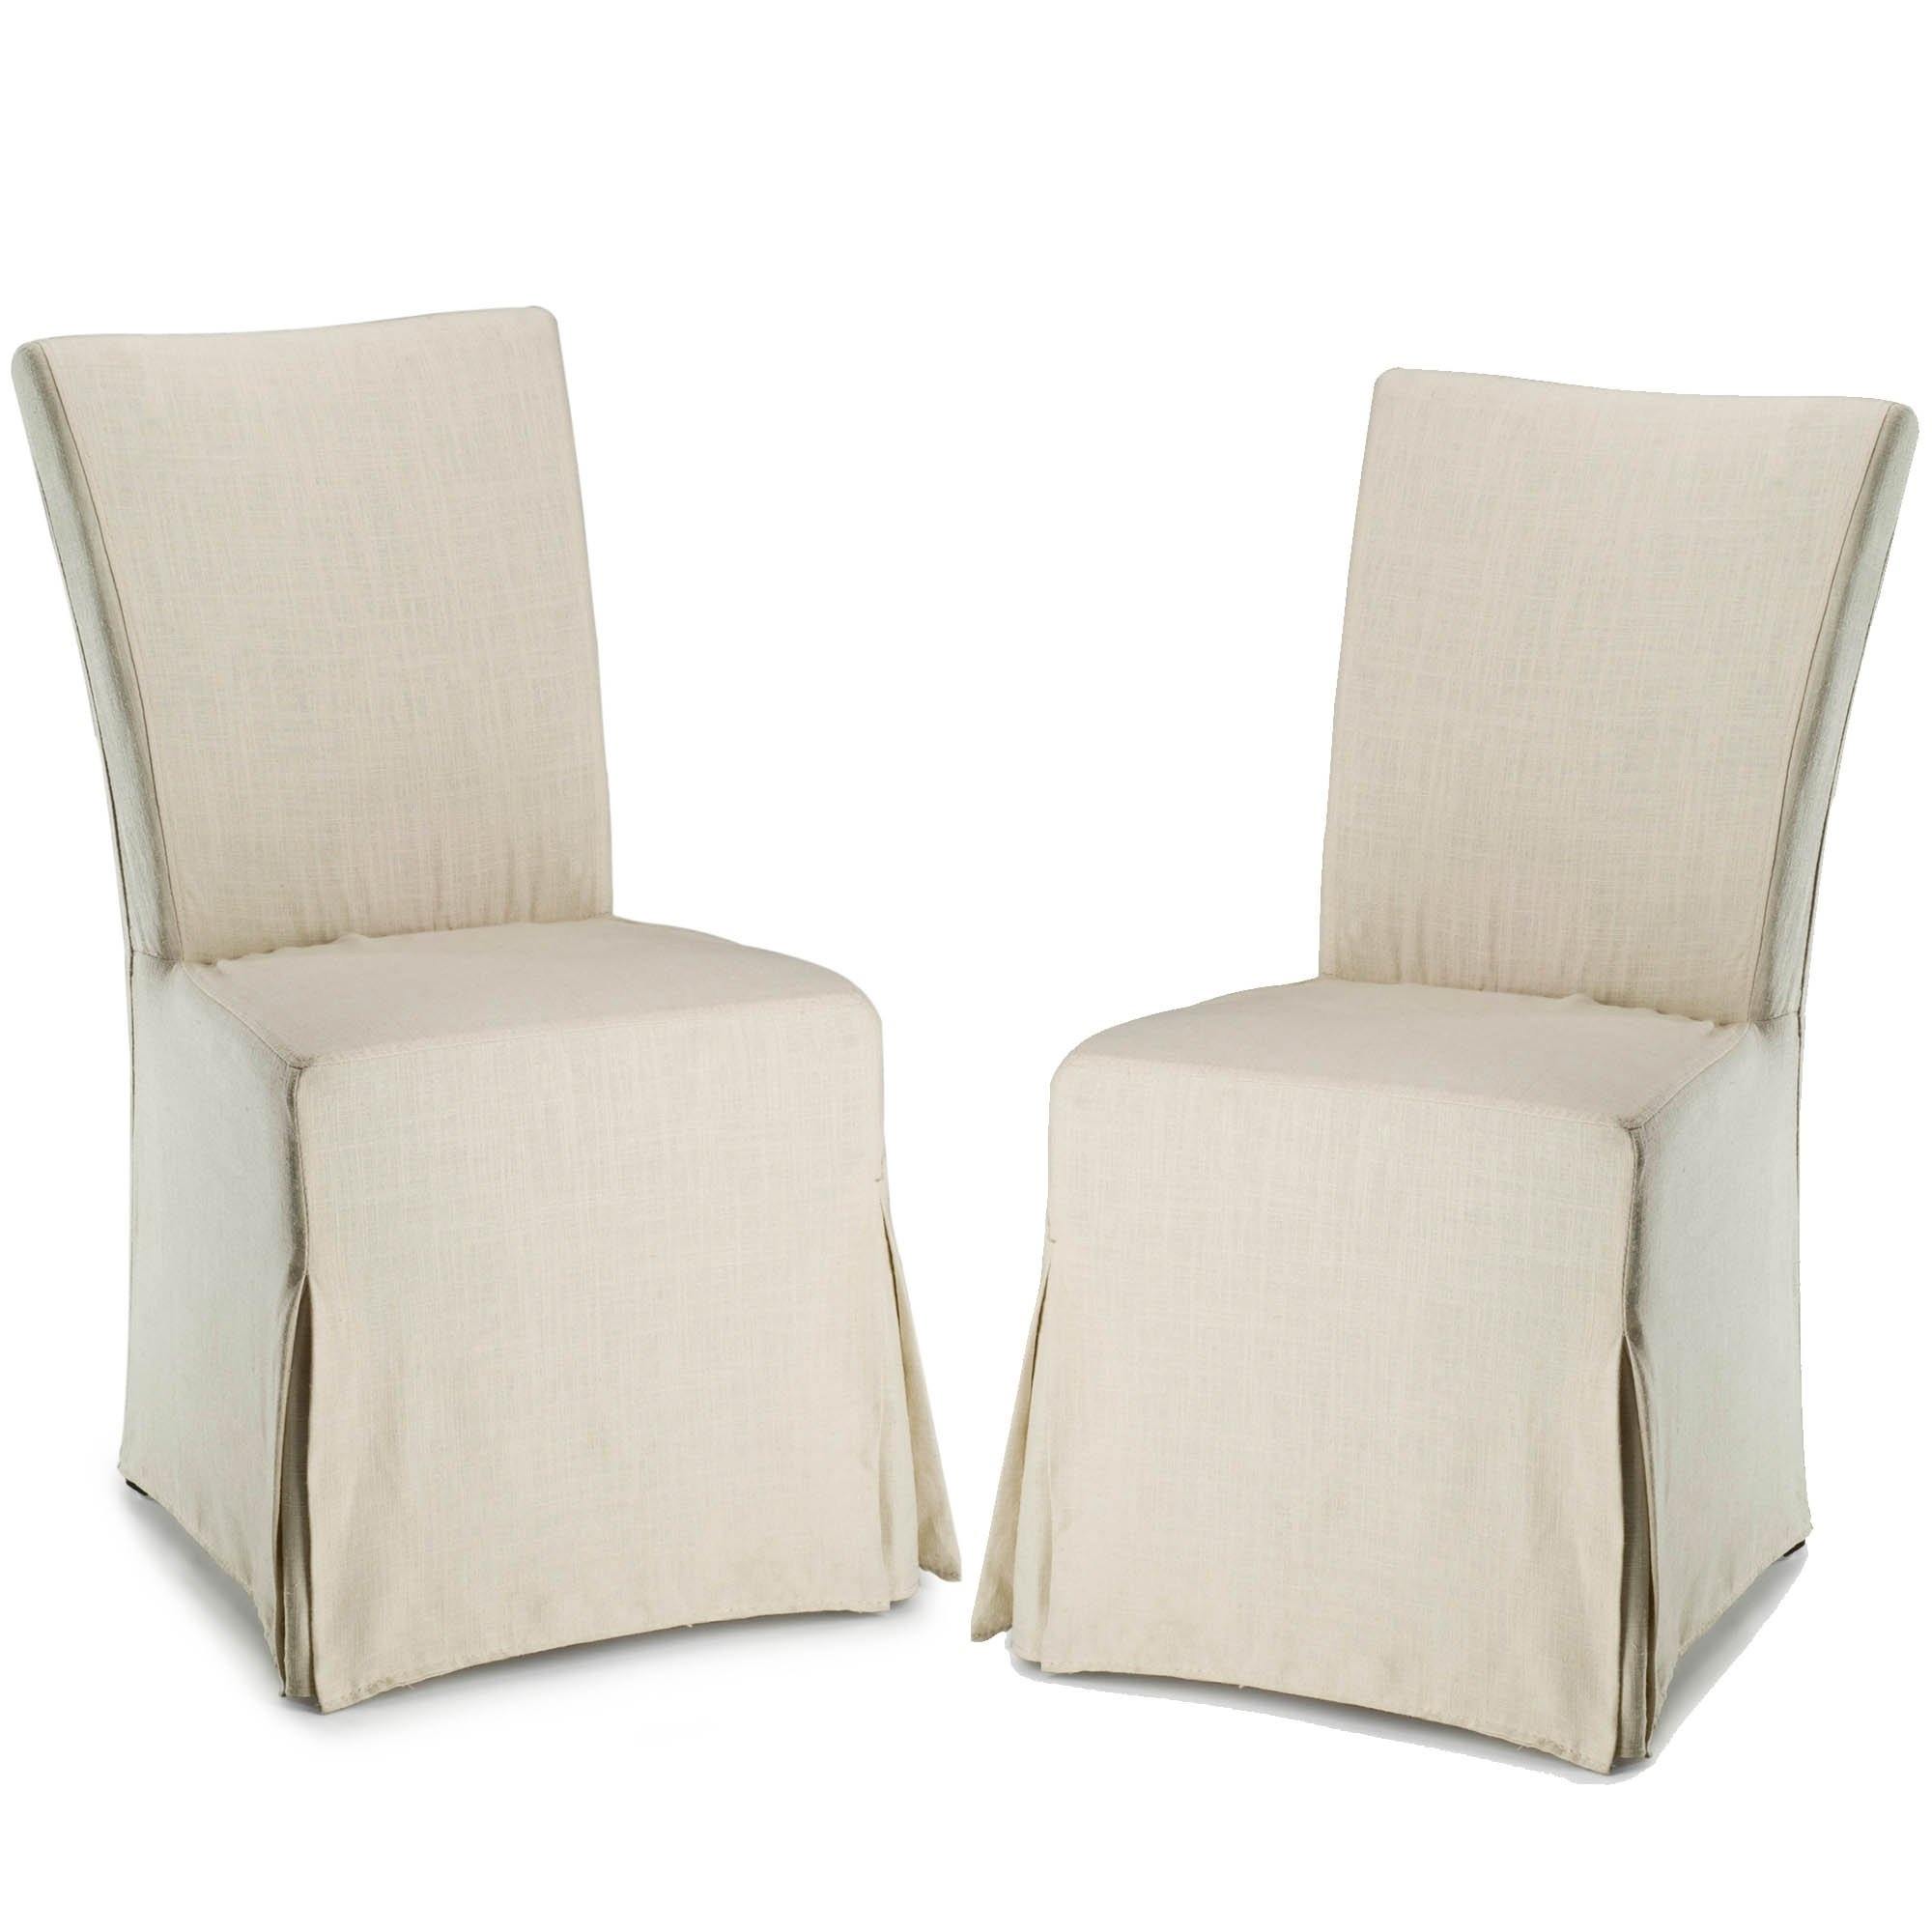 Garten Marble Skirted Side Chairs Set Of 2 In Recent Shop Safavieh Parsons Dining Slipcover Dining Chairs (Set Of 2) – 33 (Gallery 8 of 20)